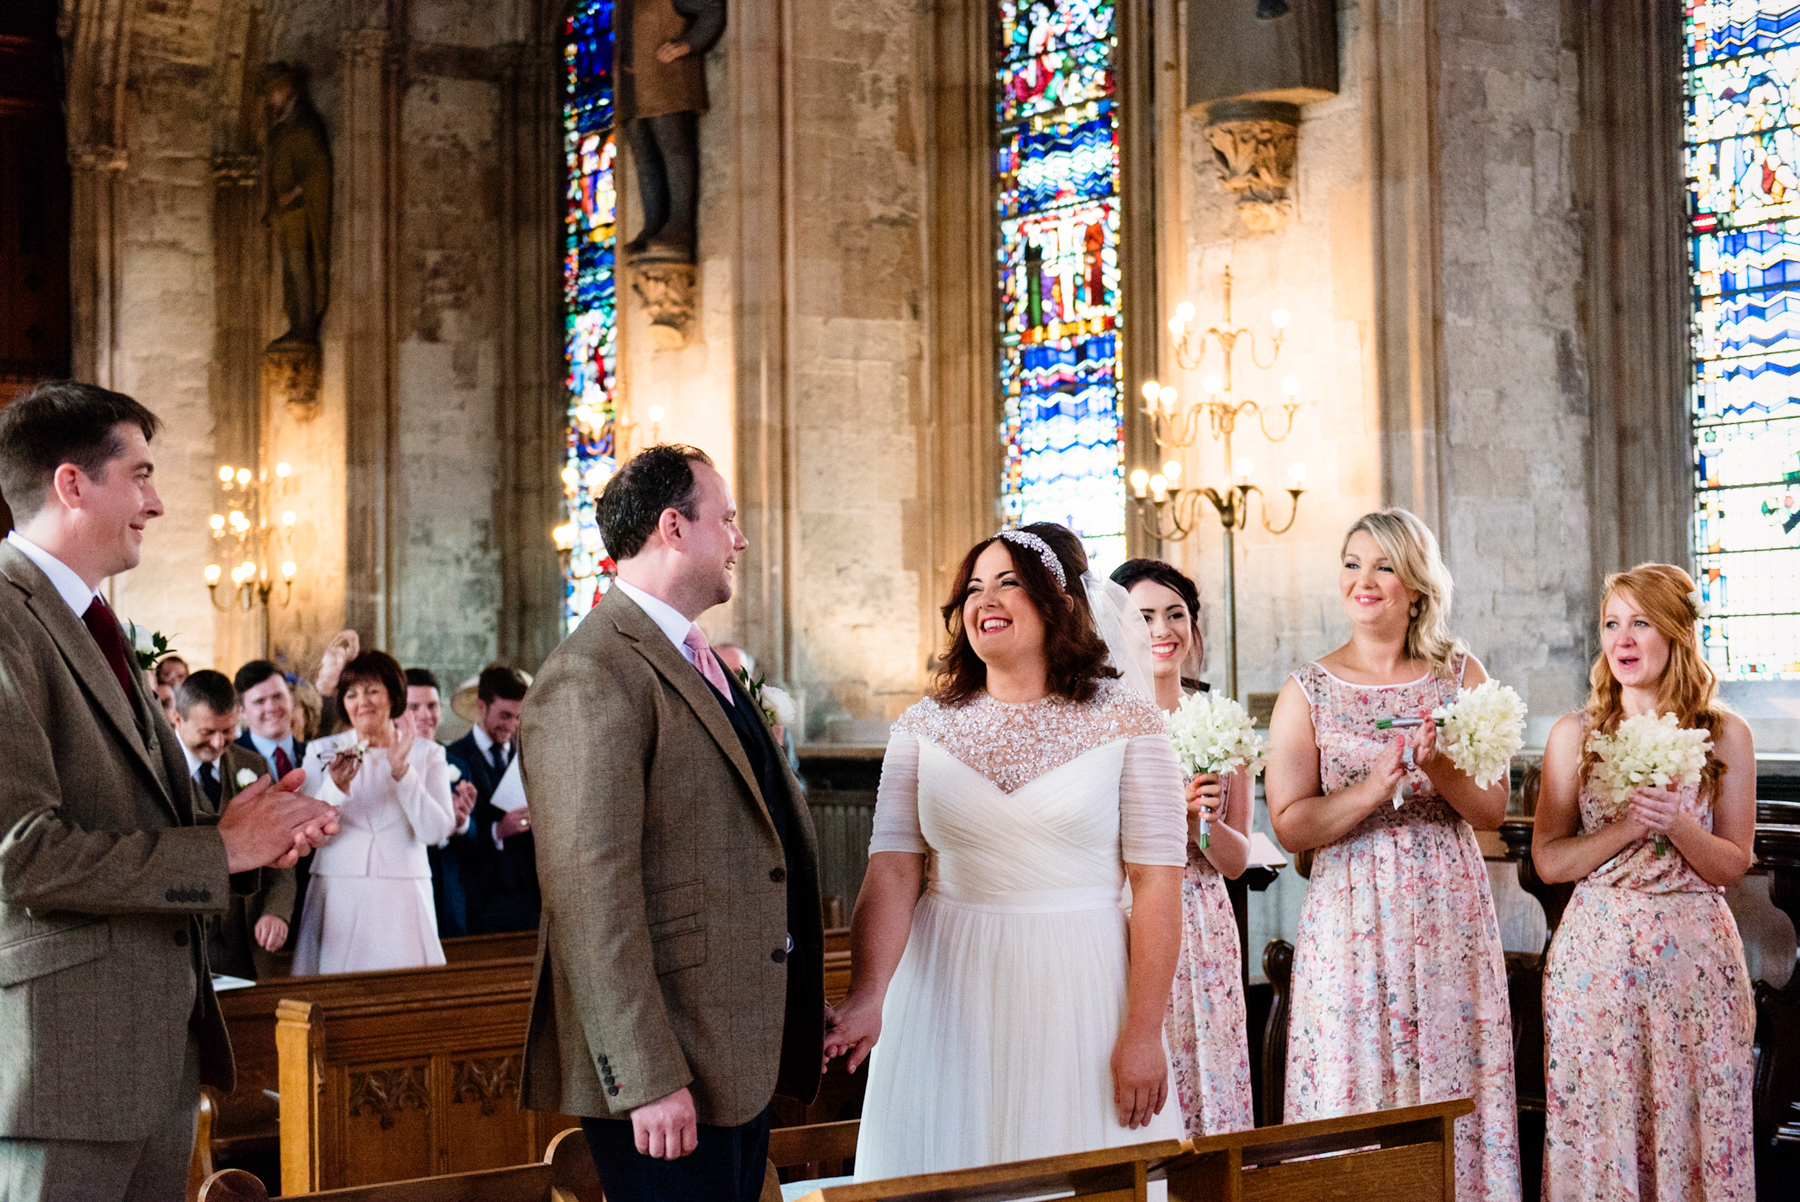 Wedding at St Etherdreda's London